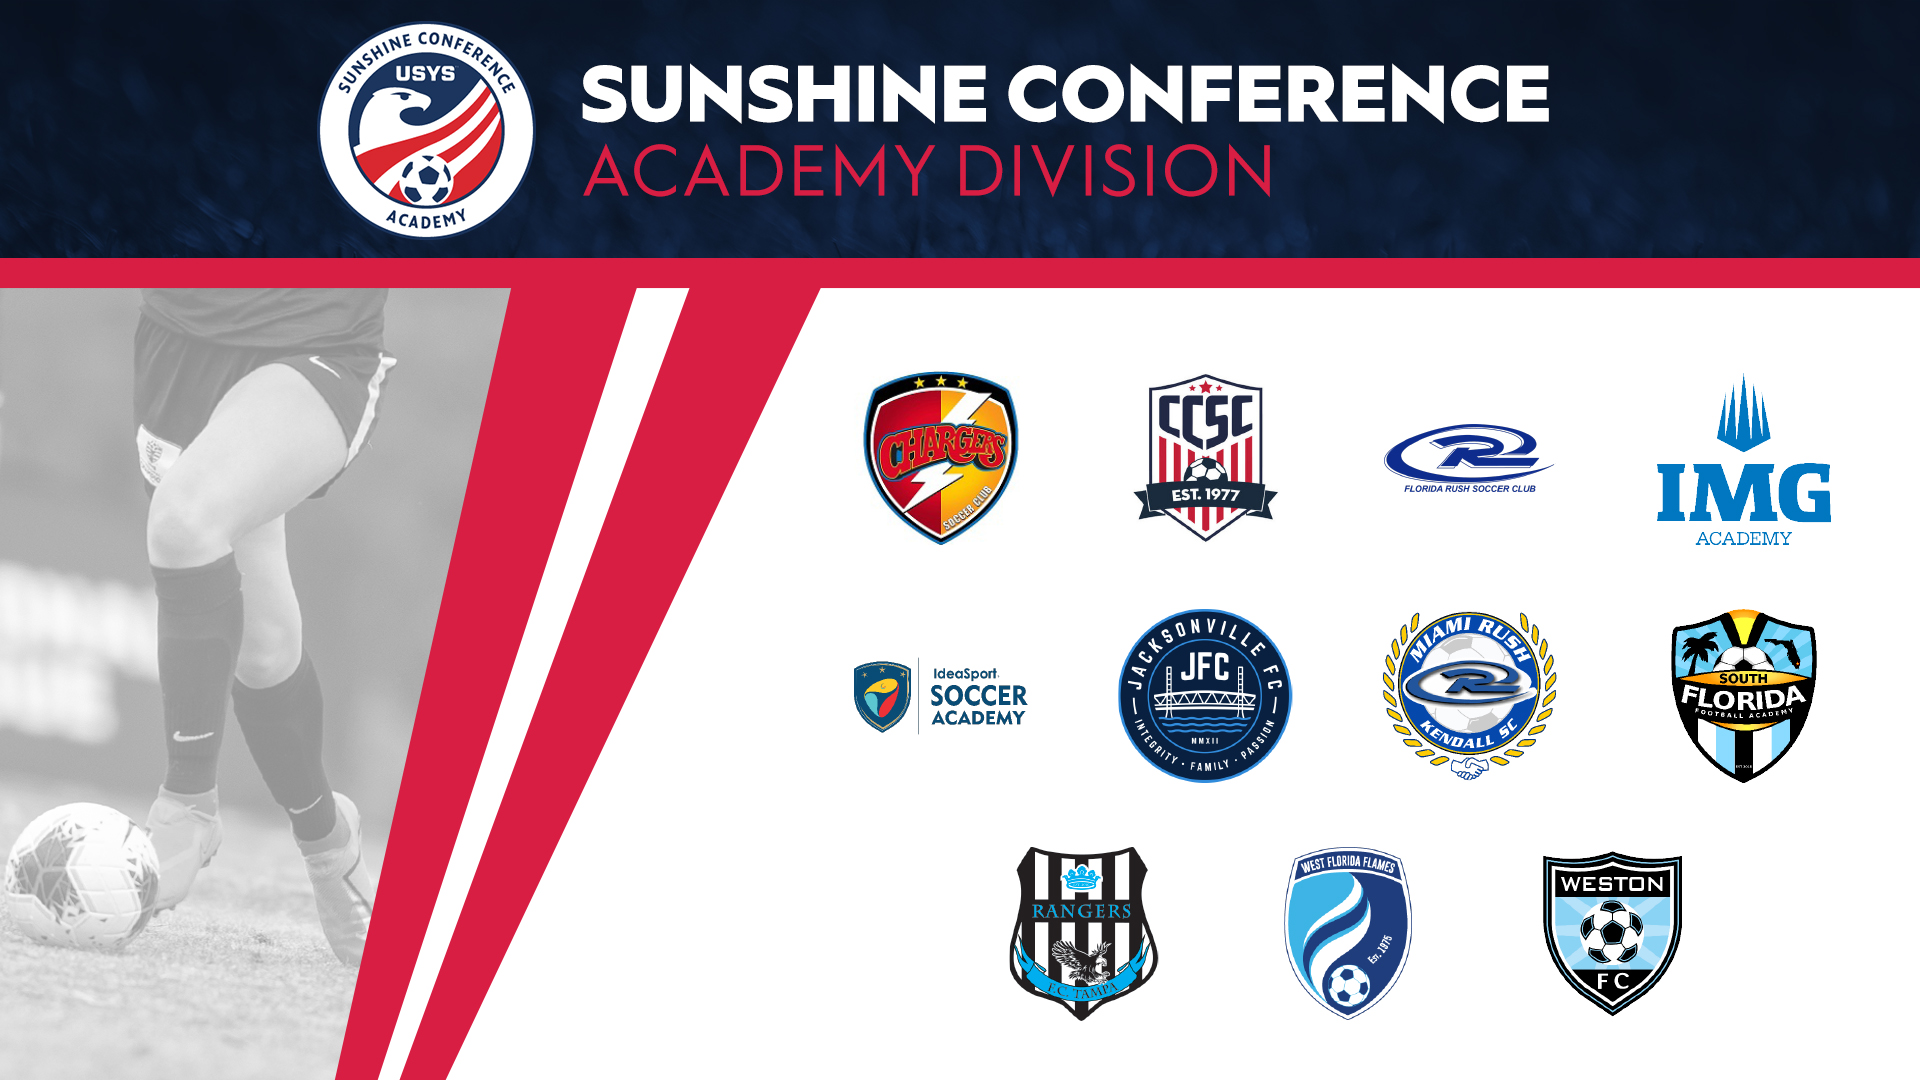 TOP CLUBS SET TO PARTICIPATE IN SUNSHINE CONFERENCE ACADEMY DIVISION